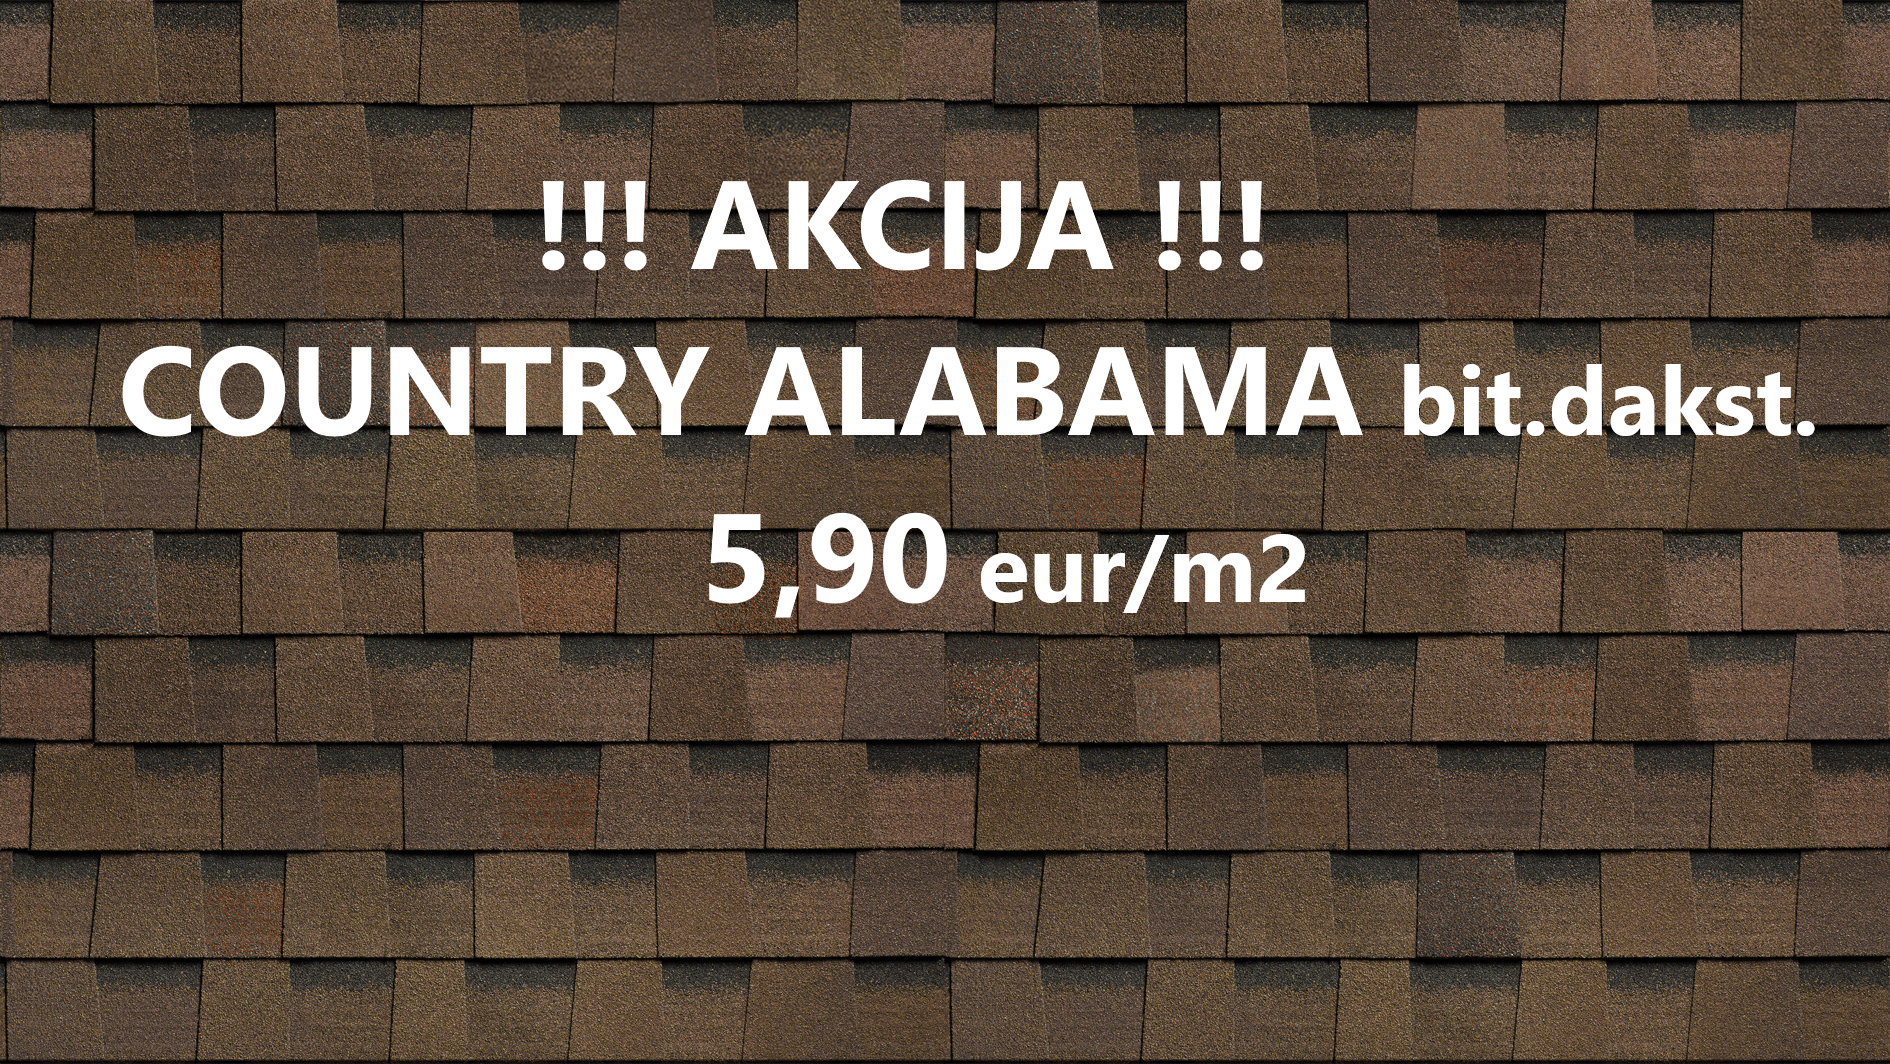 COUNTRY ALABAMA